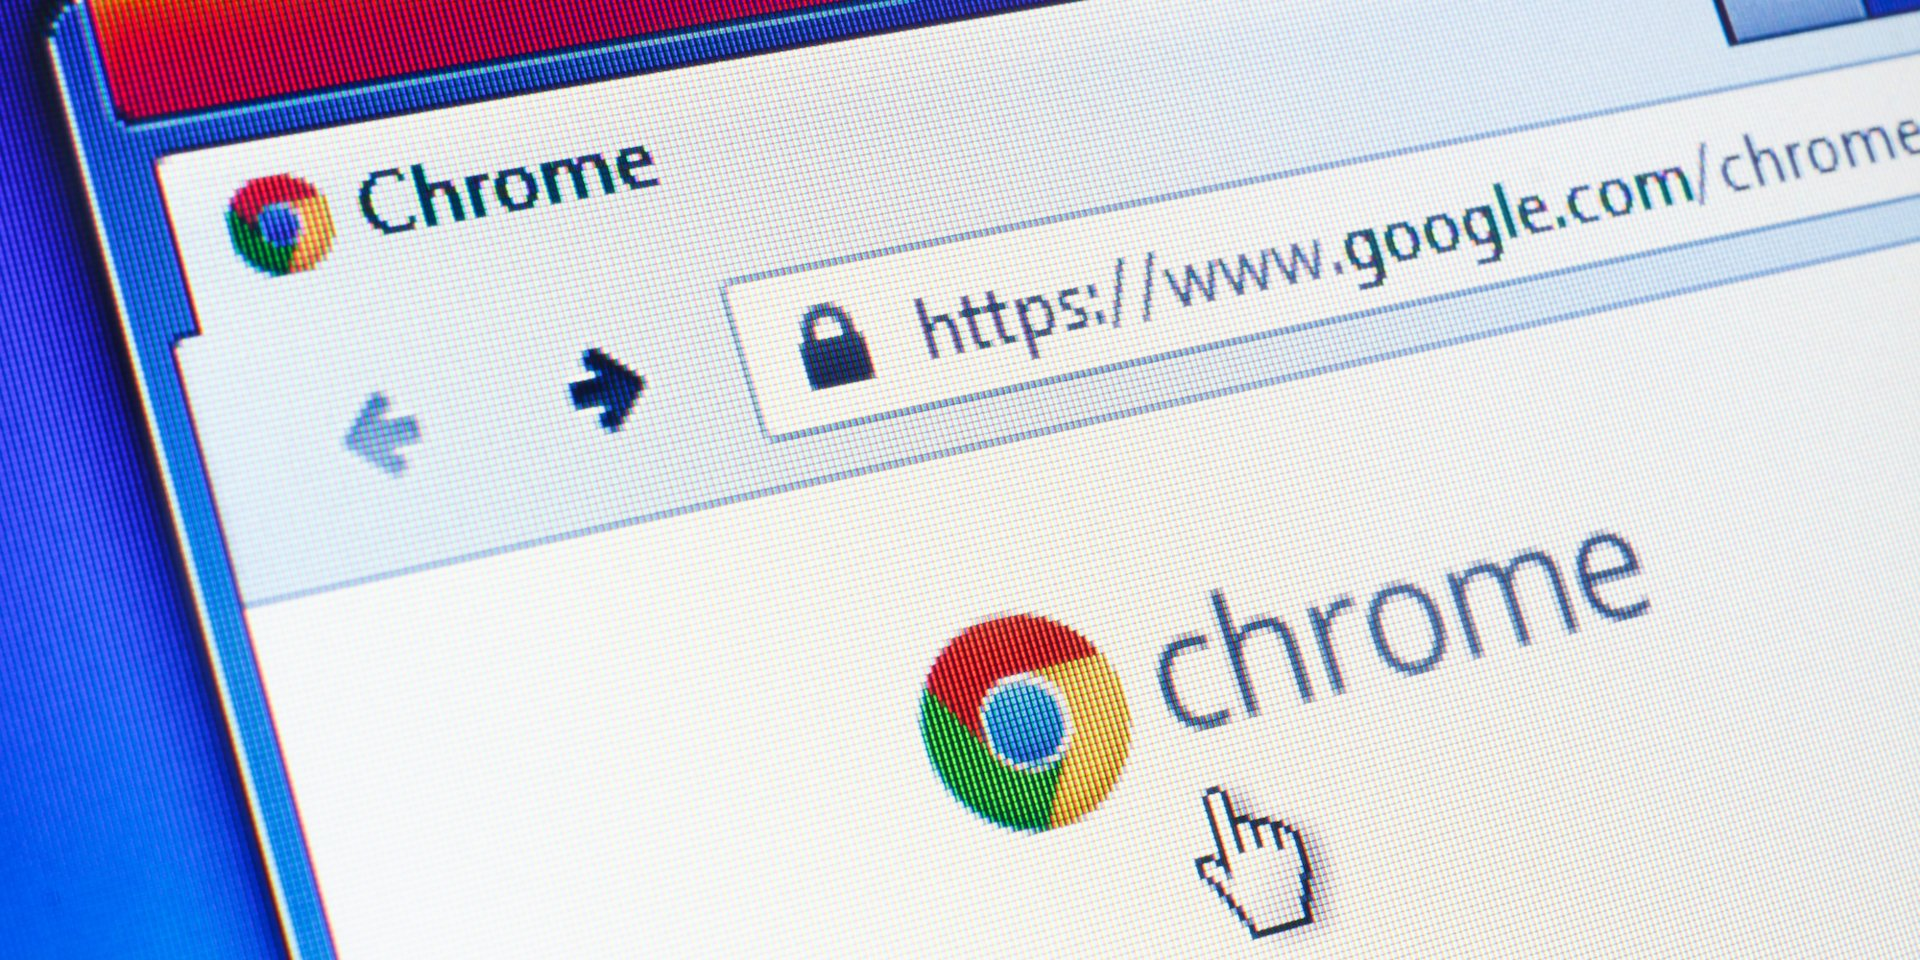 Today we will talk about such a simple thing as clearing the cache in Google chrome. Every Internet user periodically needs this procedure, because clearing the cache frees you from some common problems